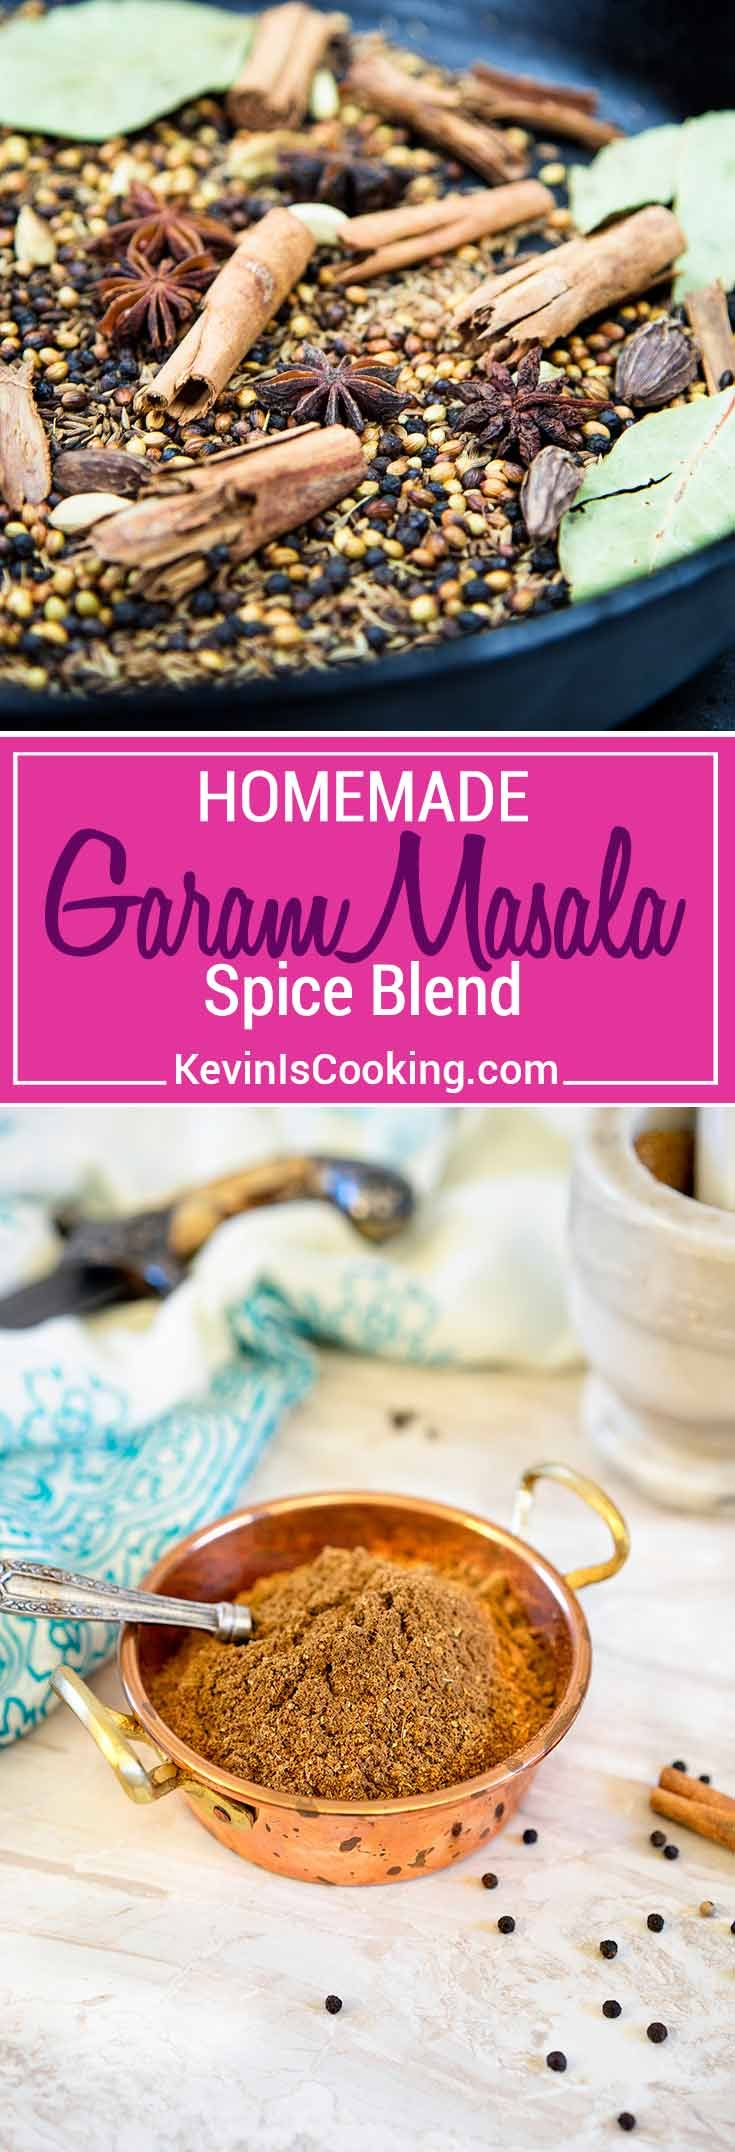 This Indian Garam Masala Spice Blendis an exotic mix of warm spices. I show you how to make it with most pantry spices or purchased from bin markets. via @keviniscooking